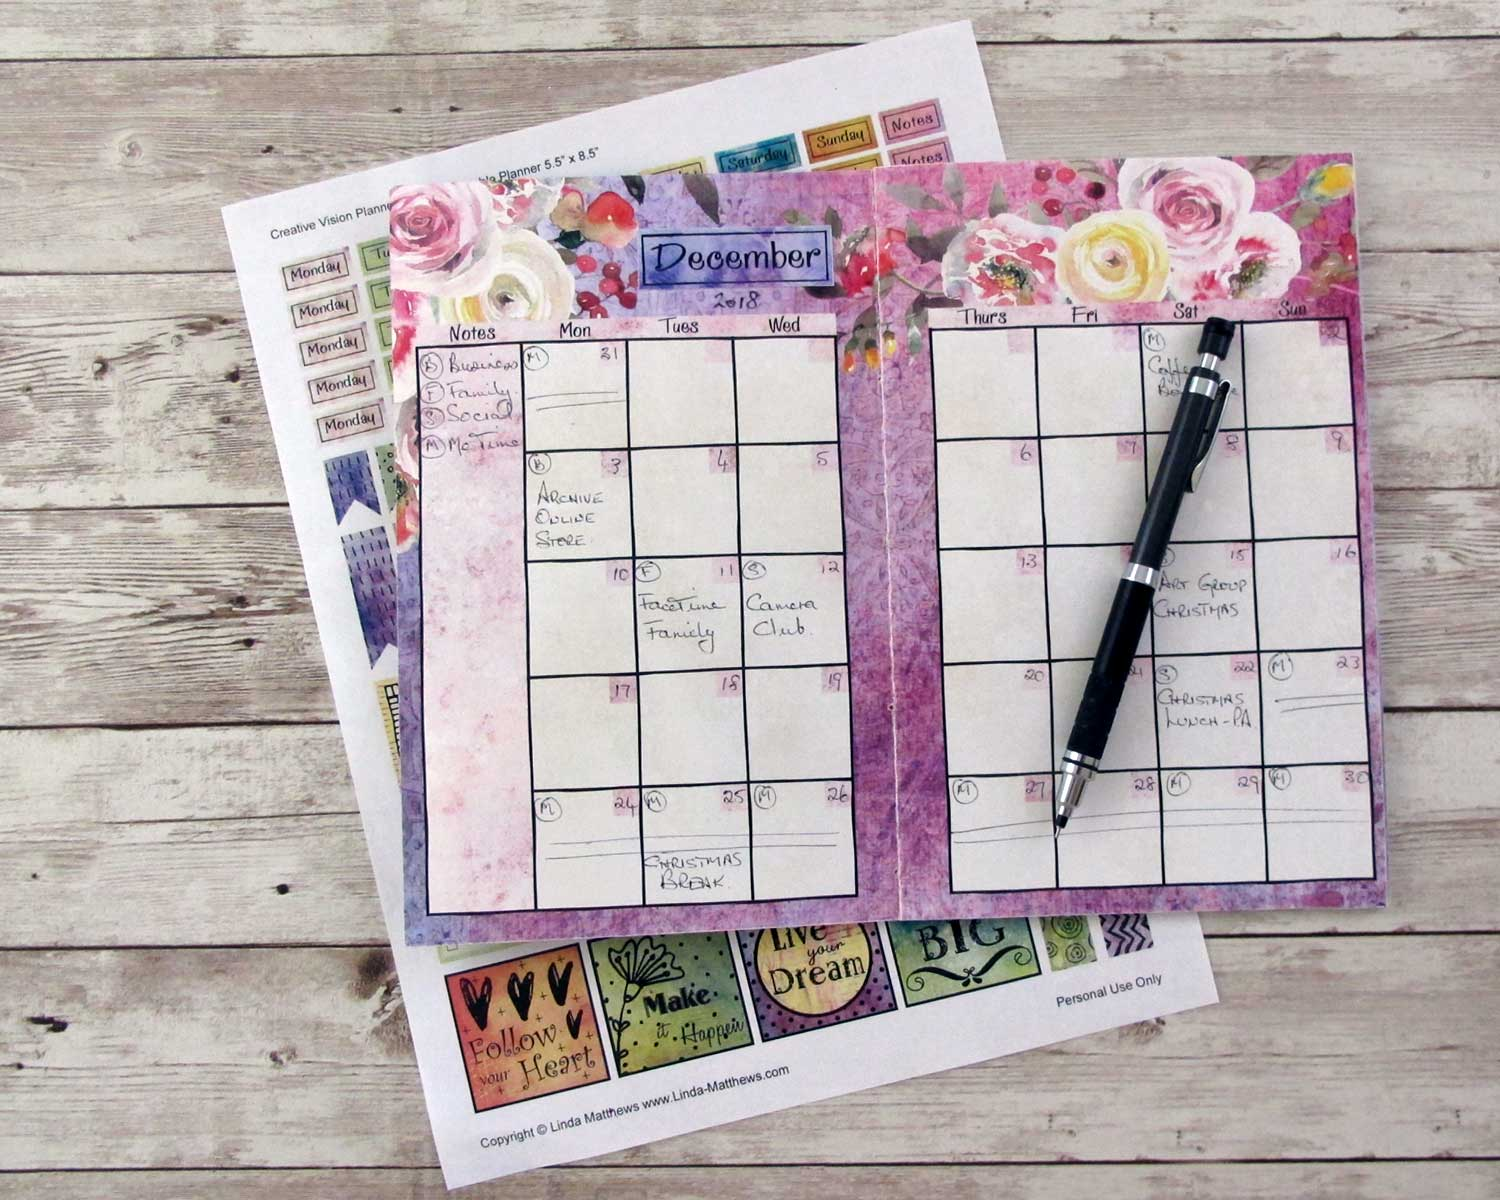 The Creative Vision Planner Journal